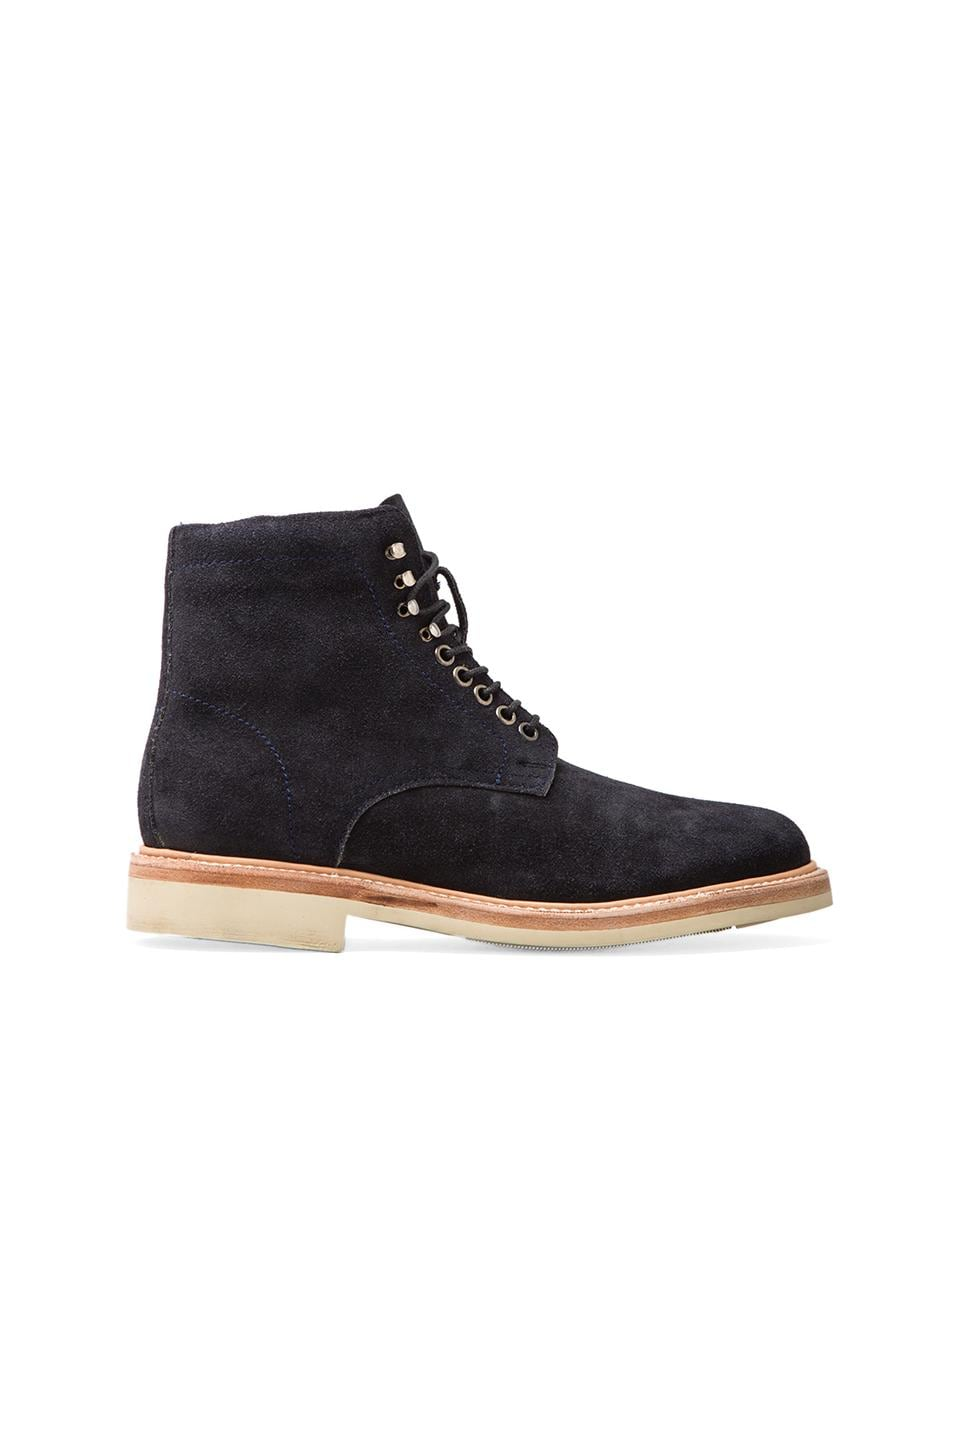 J.D. FISK Jamie Boot in Navy